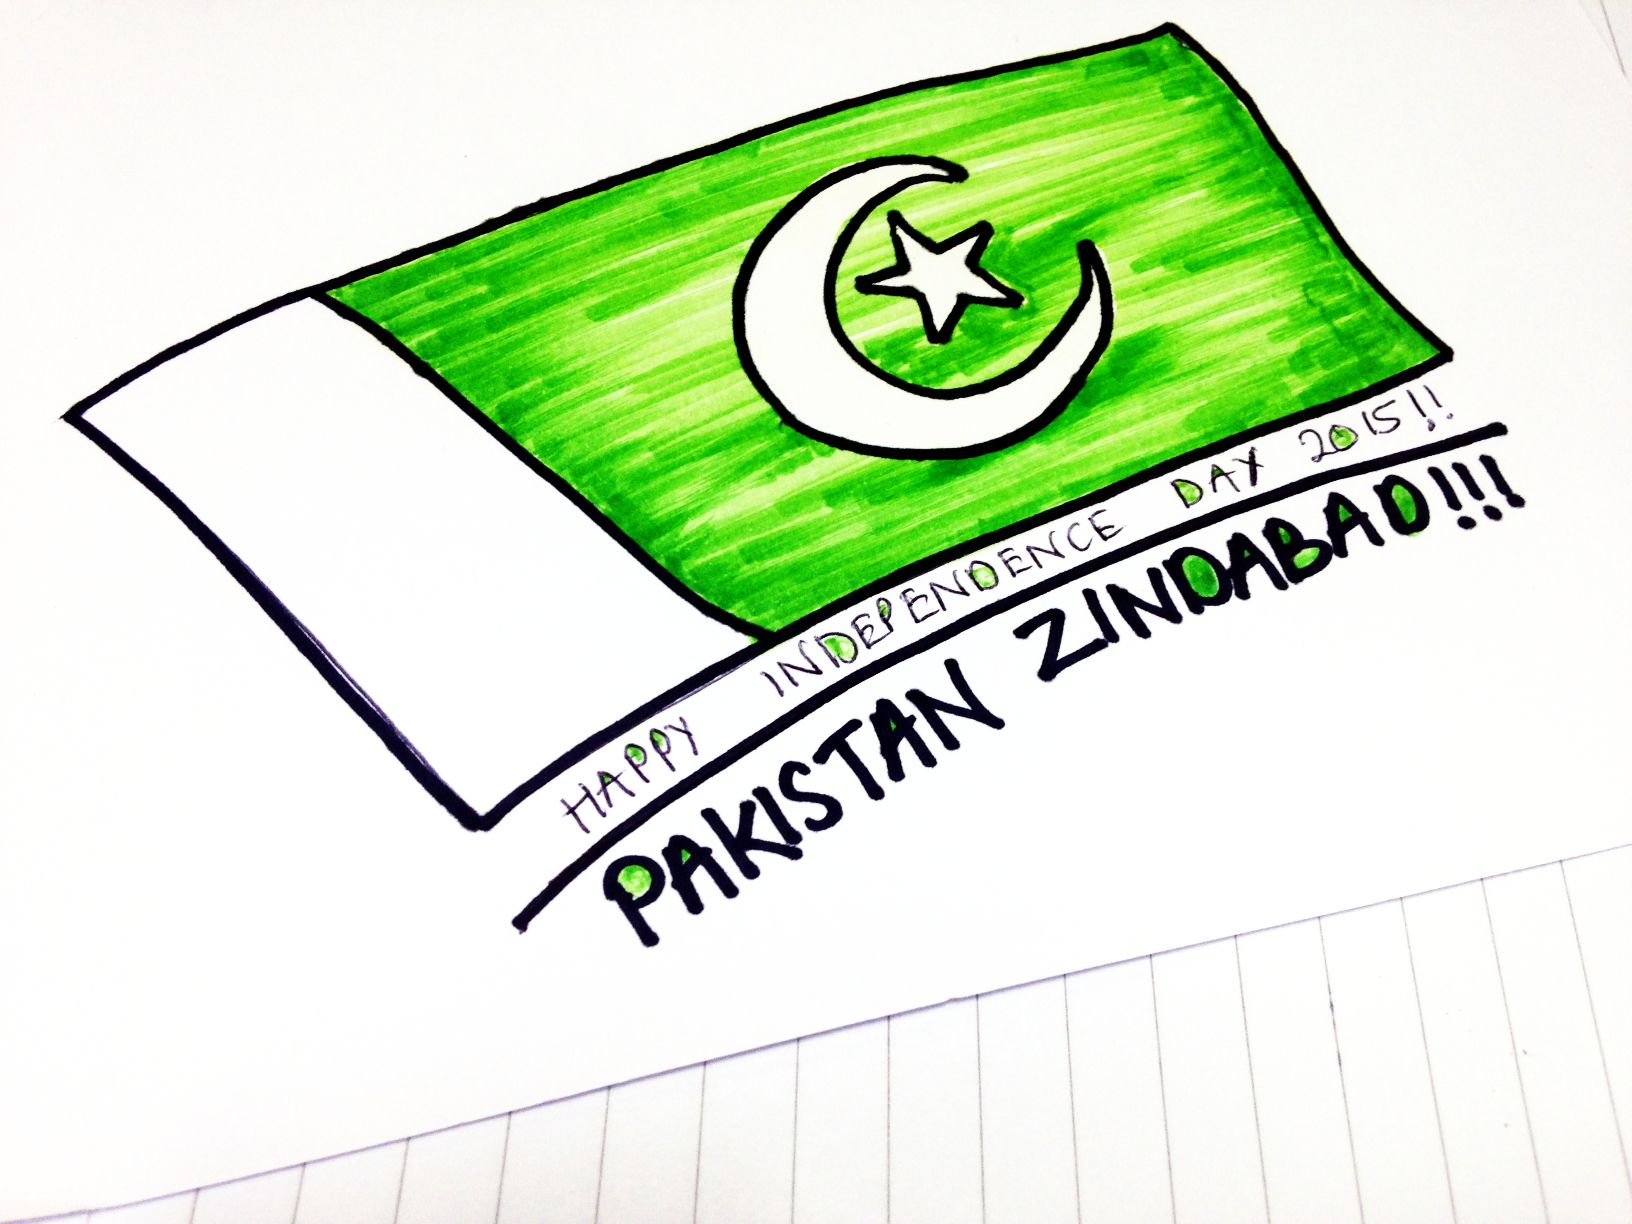 essay on pakistan independence day Independence day of india independence day essay sikh areas were assigned to the new india and predominantly muslim areas to the new nation of pakistan.